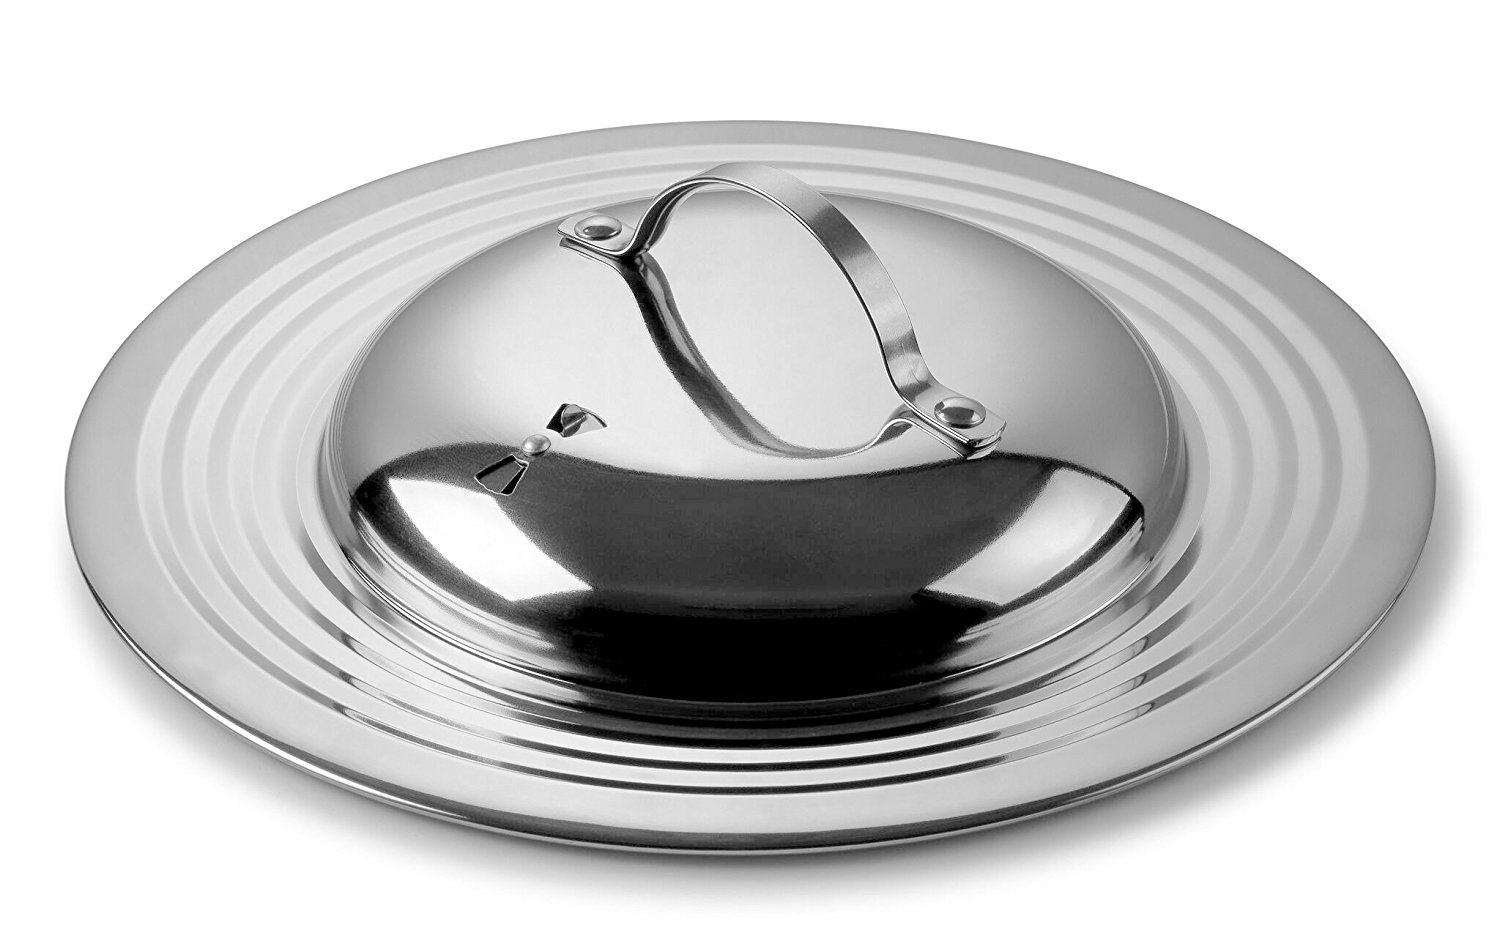 Modern Innovations Elegant 18/8 Stainless Steel Universal Lid with Adjustable Steam Vent, Fits All 7'' to 12'' Pots and Pans, Replacement Frying Pan Cover and Cookware Lids